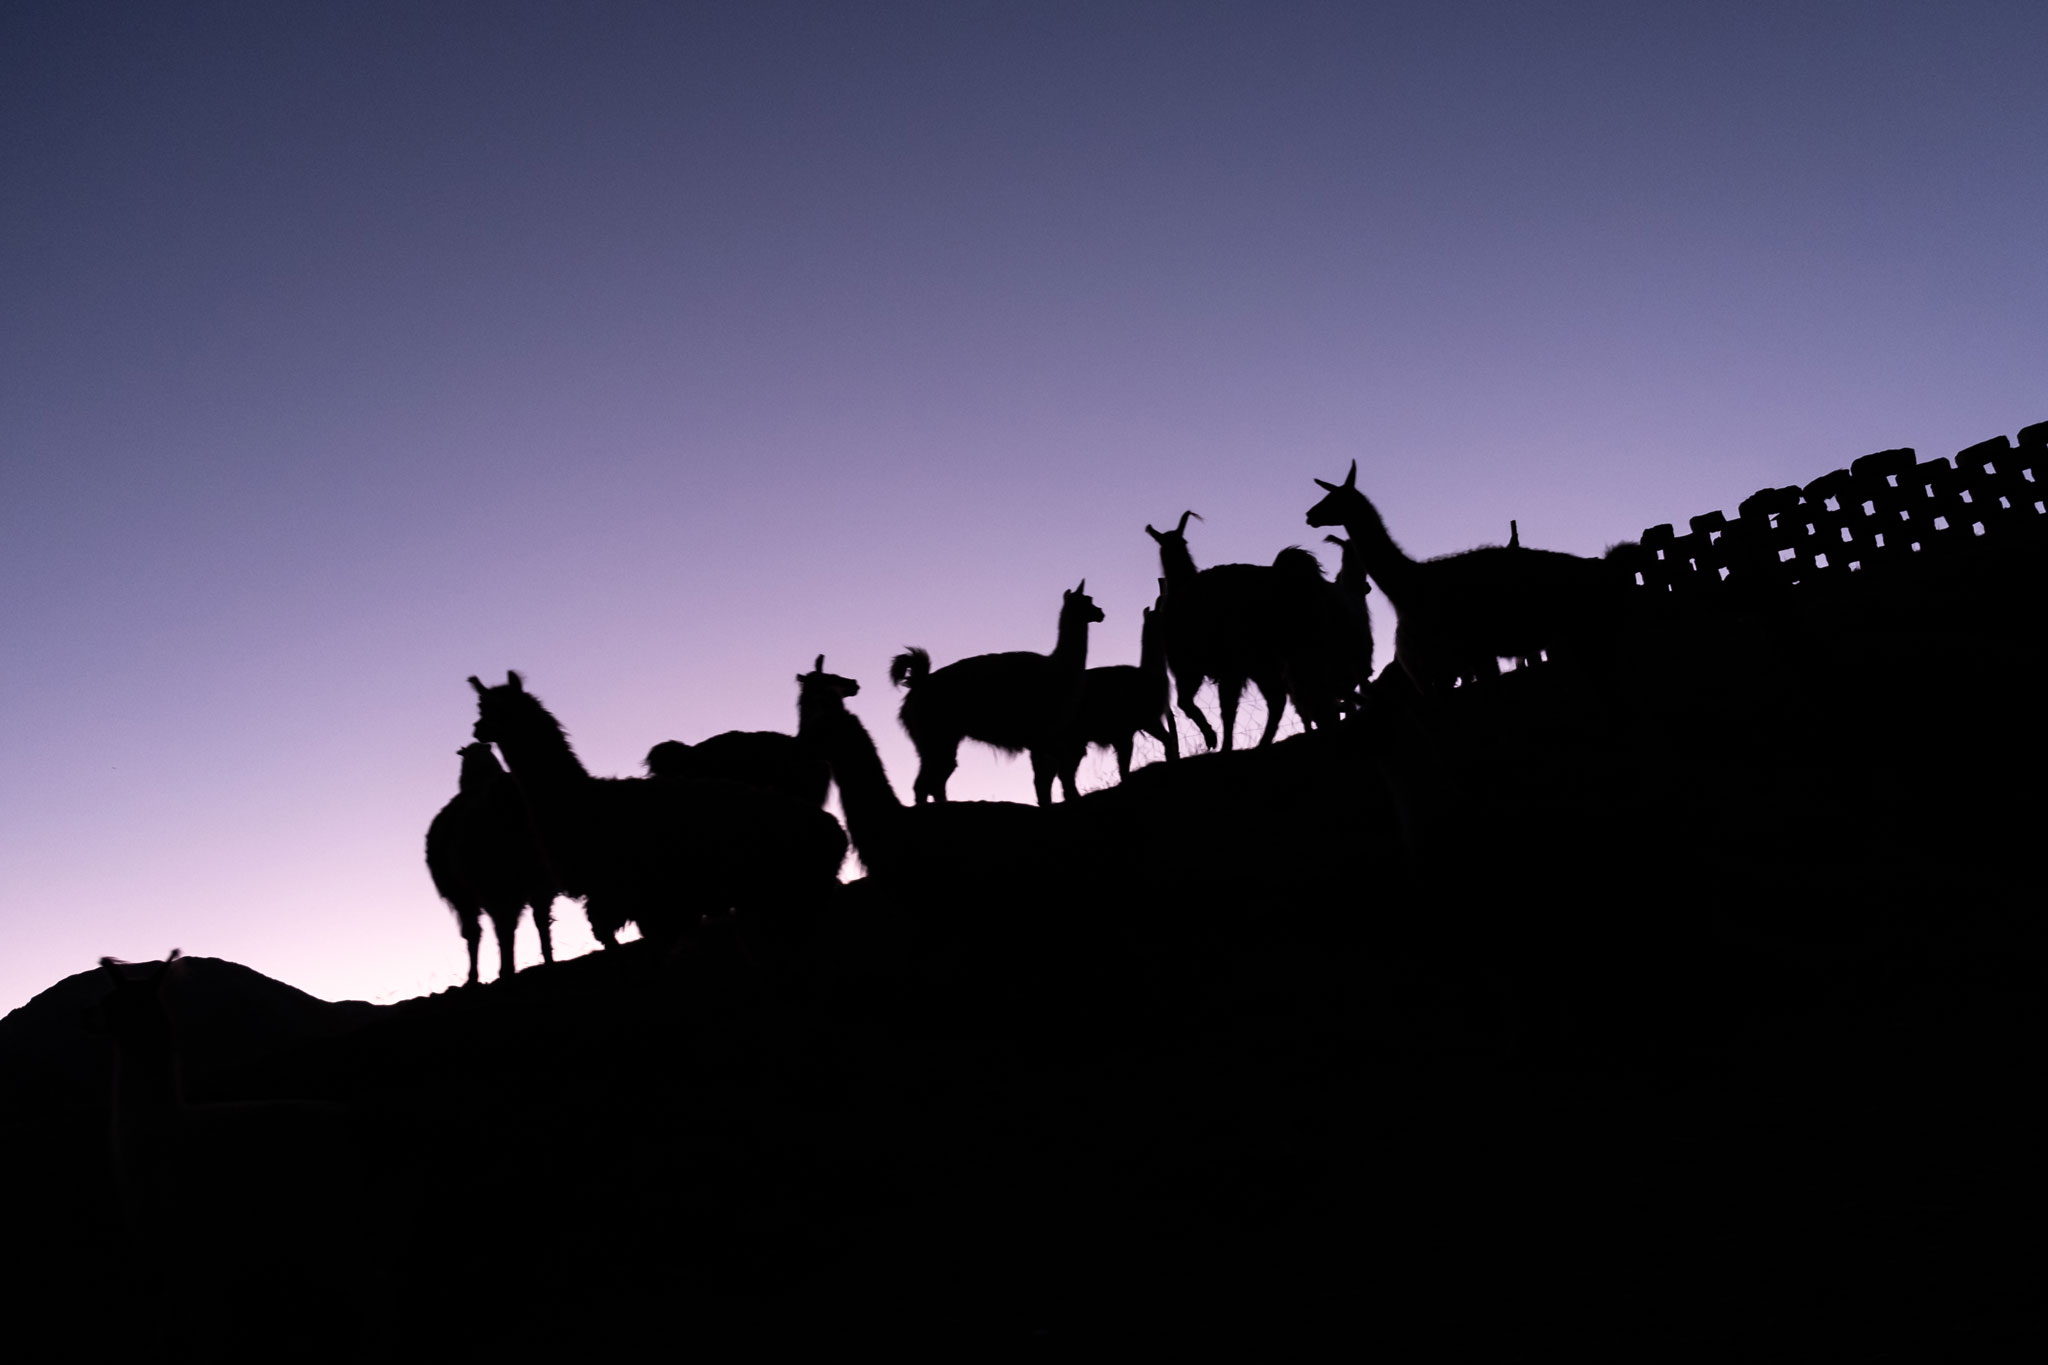 SILHOUETTE OF LAMAS IN PERU